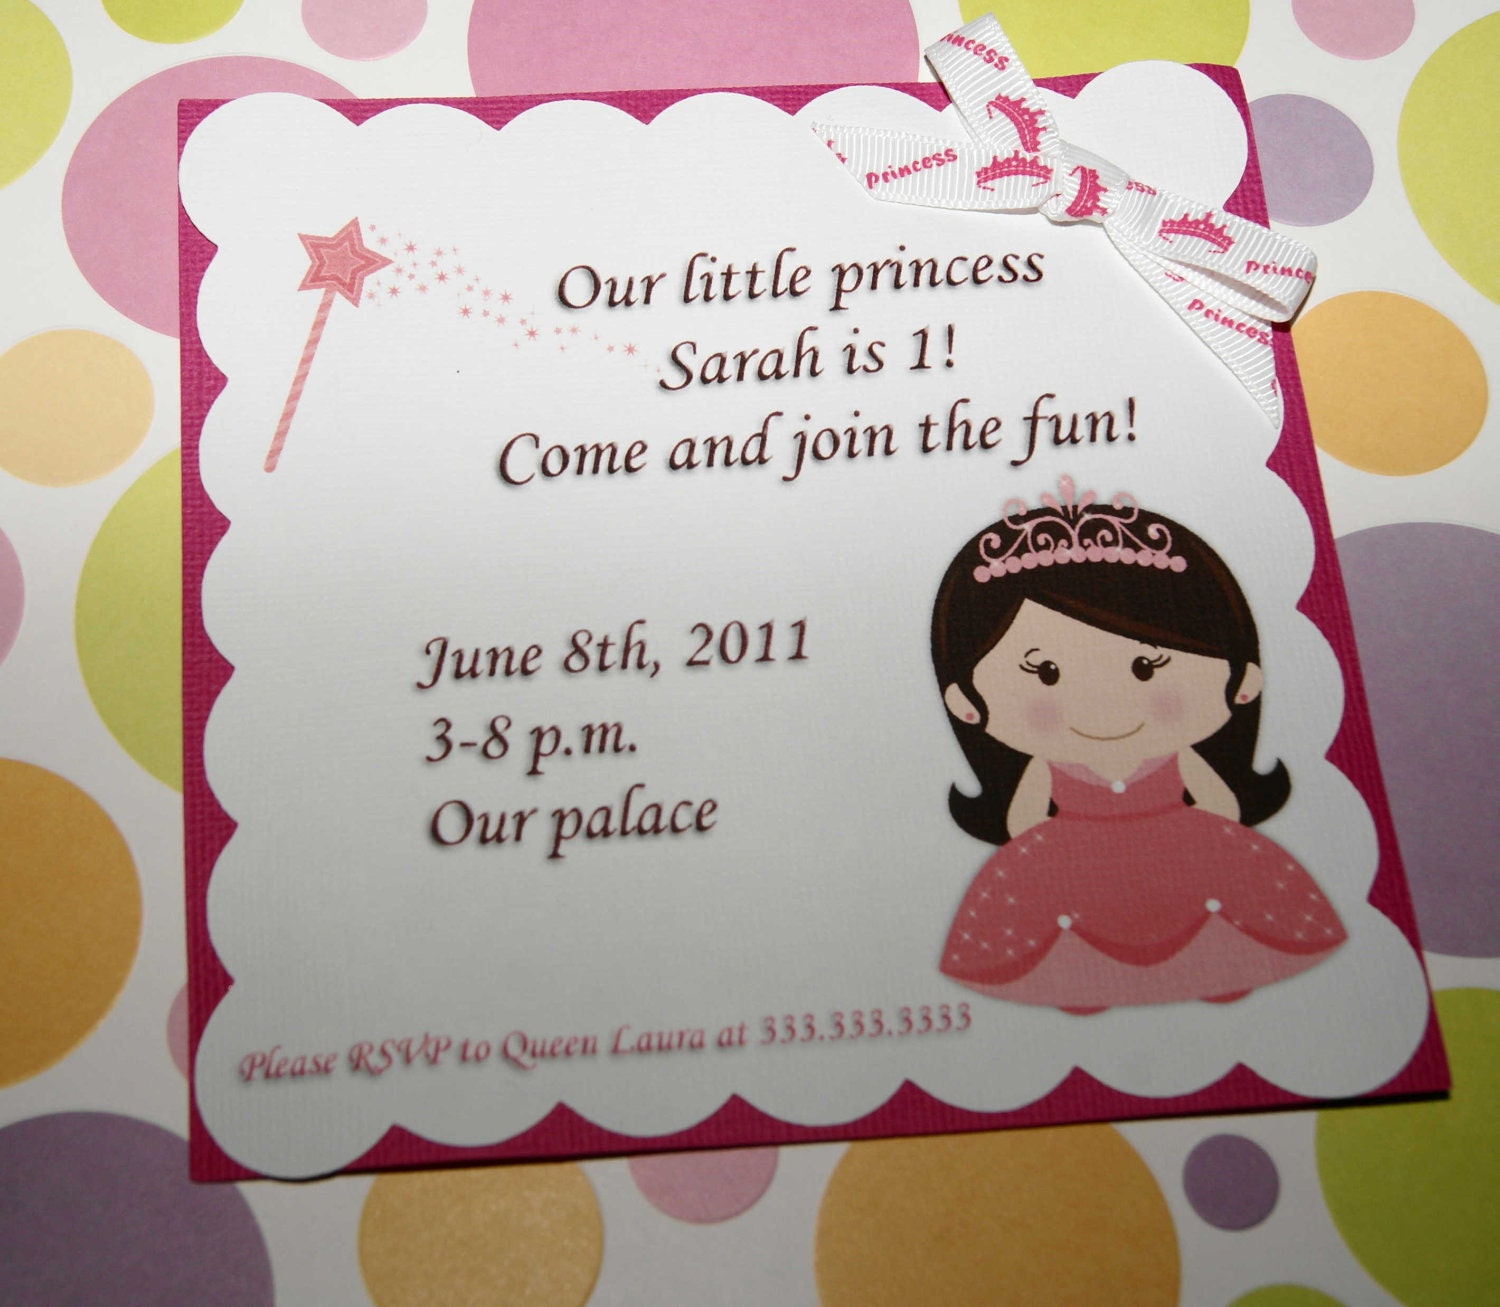 Little Princess Personalized Birthday Invitation, Girl, Pink, Crown, Princess Party - Set of 12